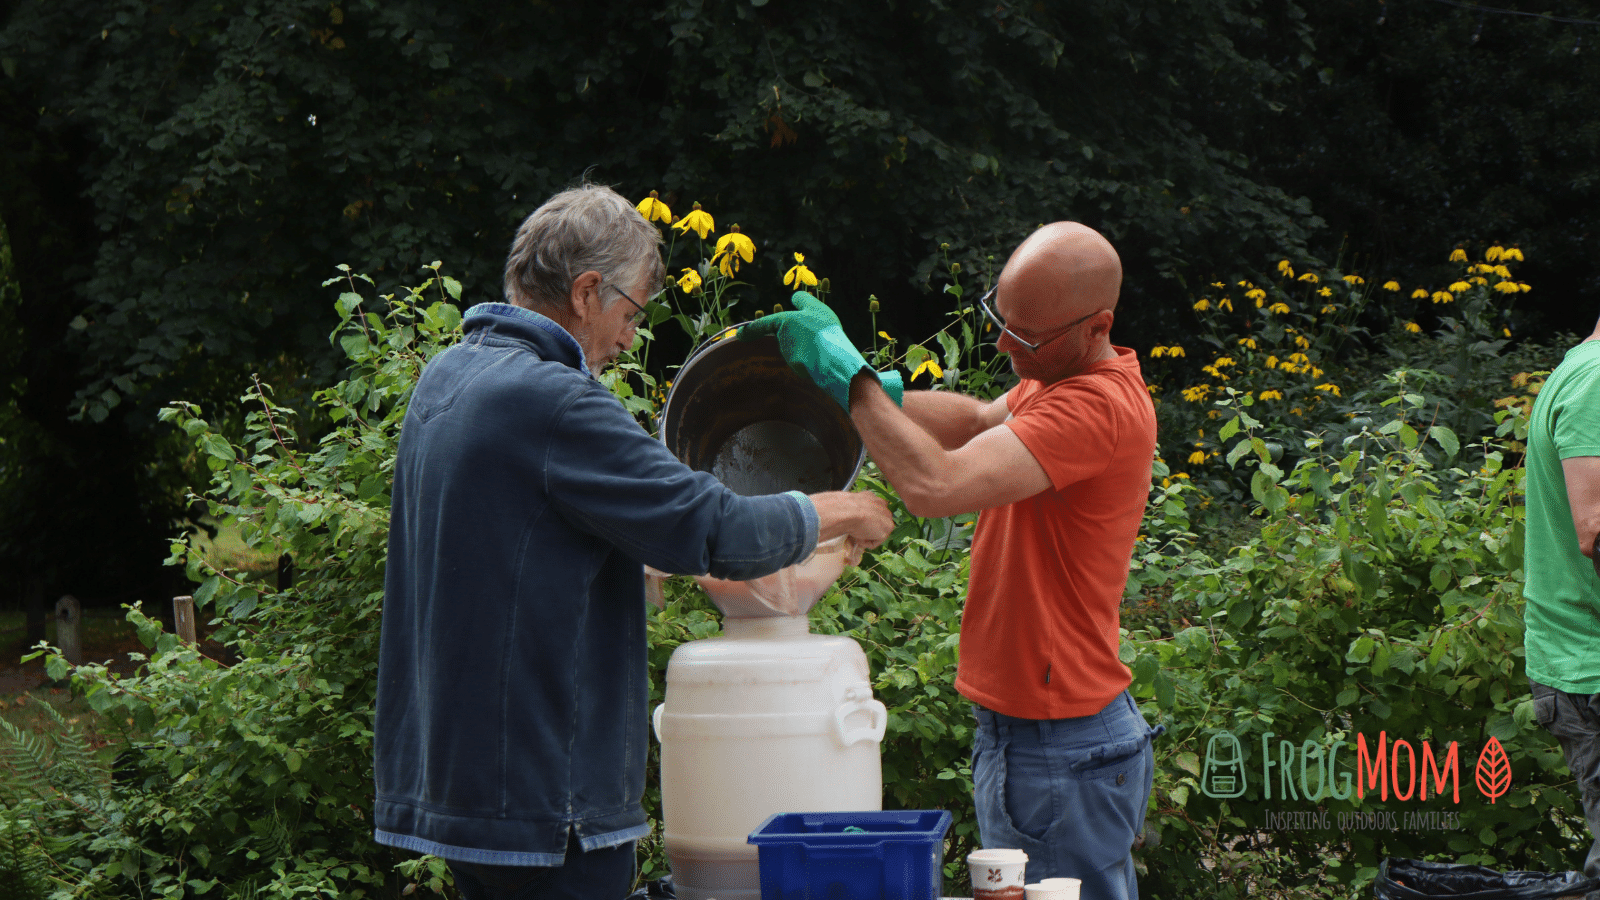 Volunteers straining freshly pressed apple juice through cheese cloth at Polesden Lacey in Surrey, England.